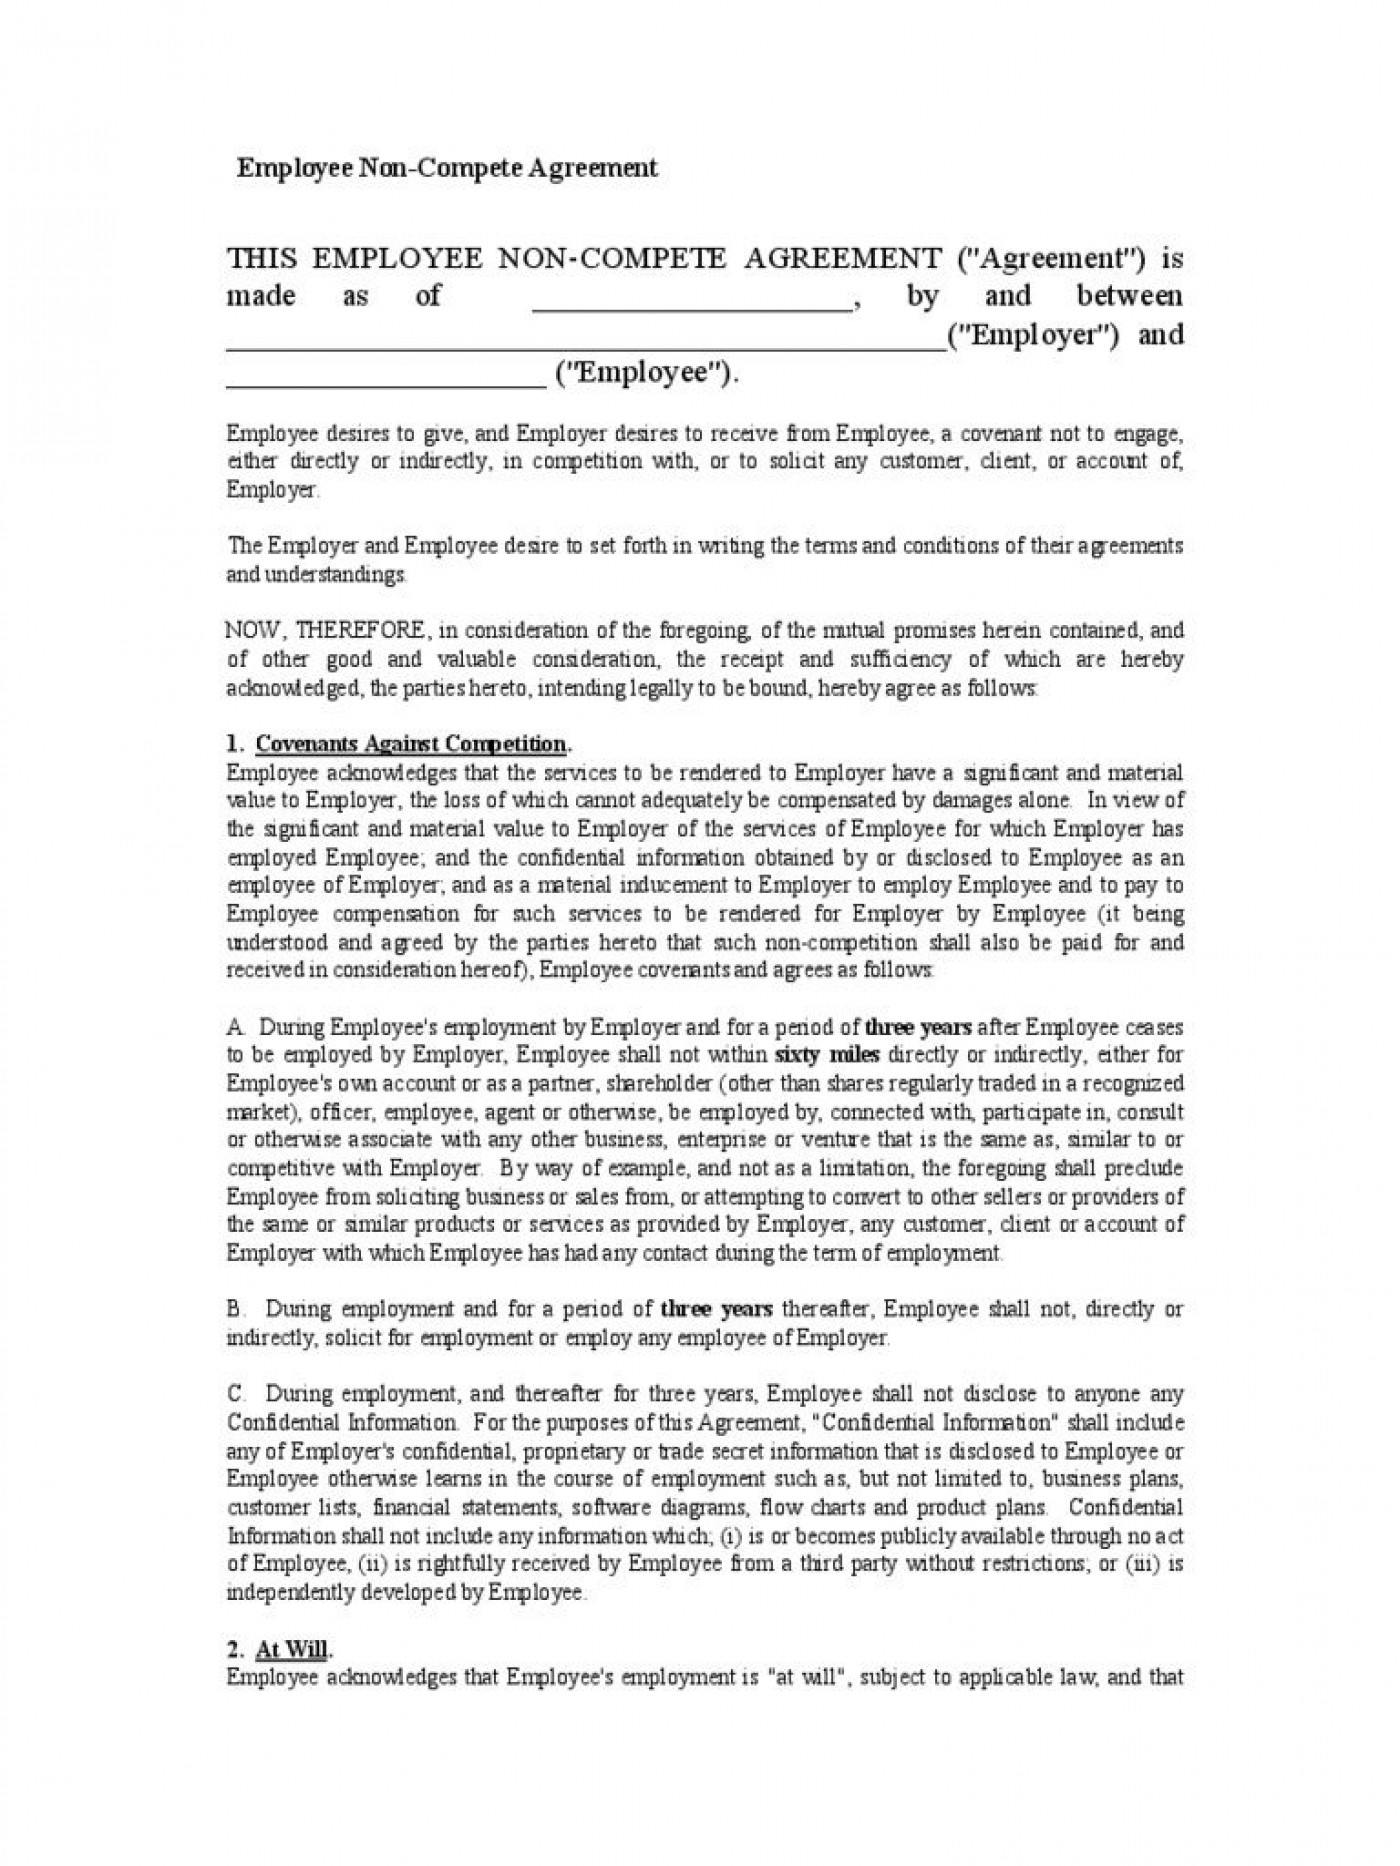 002 Fantastic Employee Non Compete Agreement Template Highest Quality  Free Confidentiality Non-compete Disclosure1400